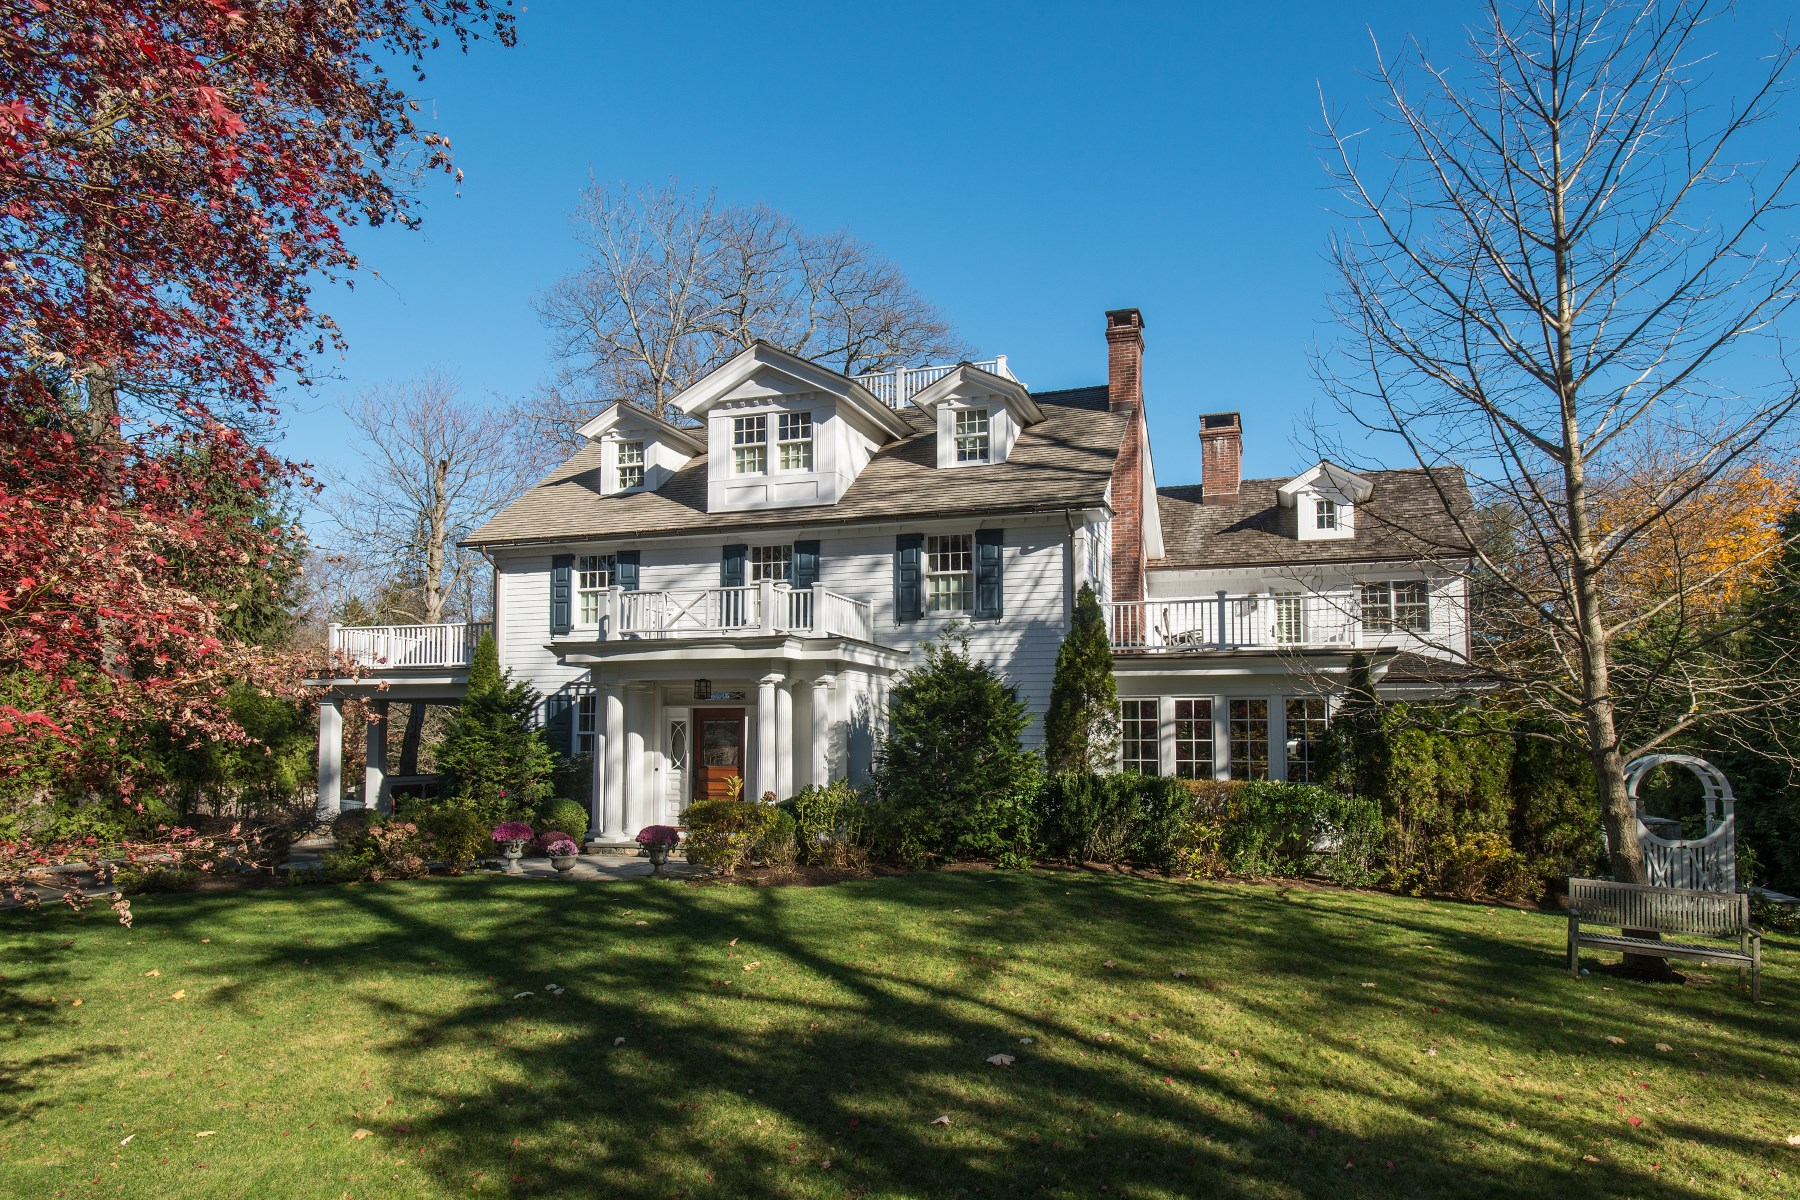 Single Family Home for Sale at 19 Indian Head Road, Riverside CT Riverside, Connecticut, 06878 United States